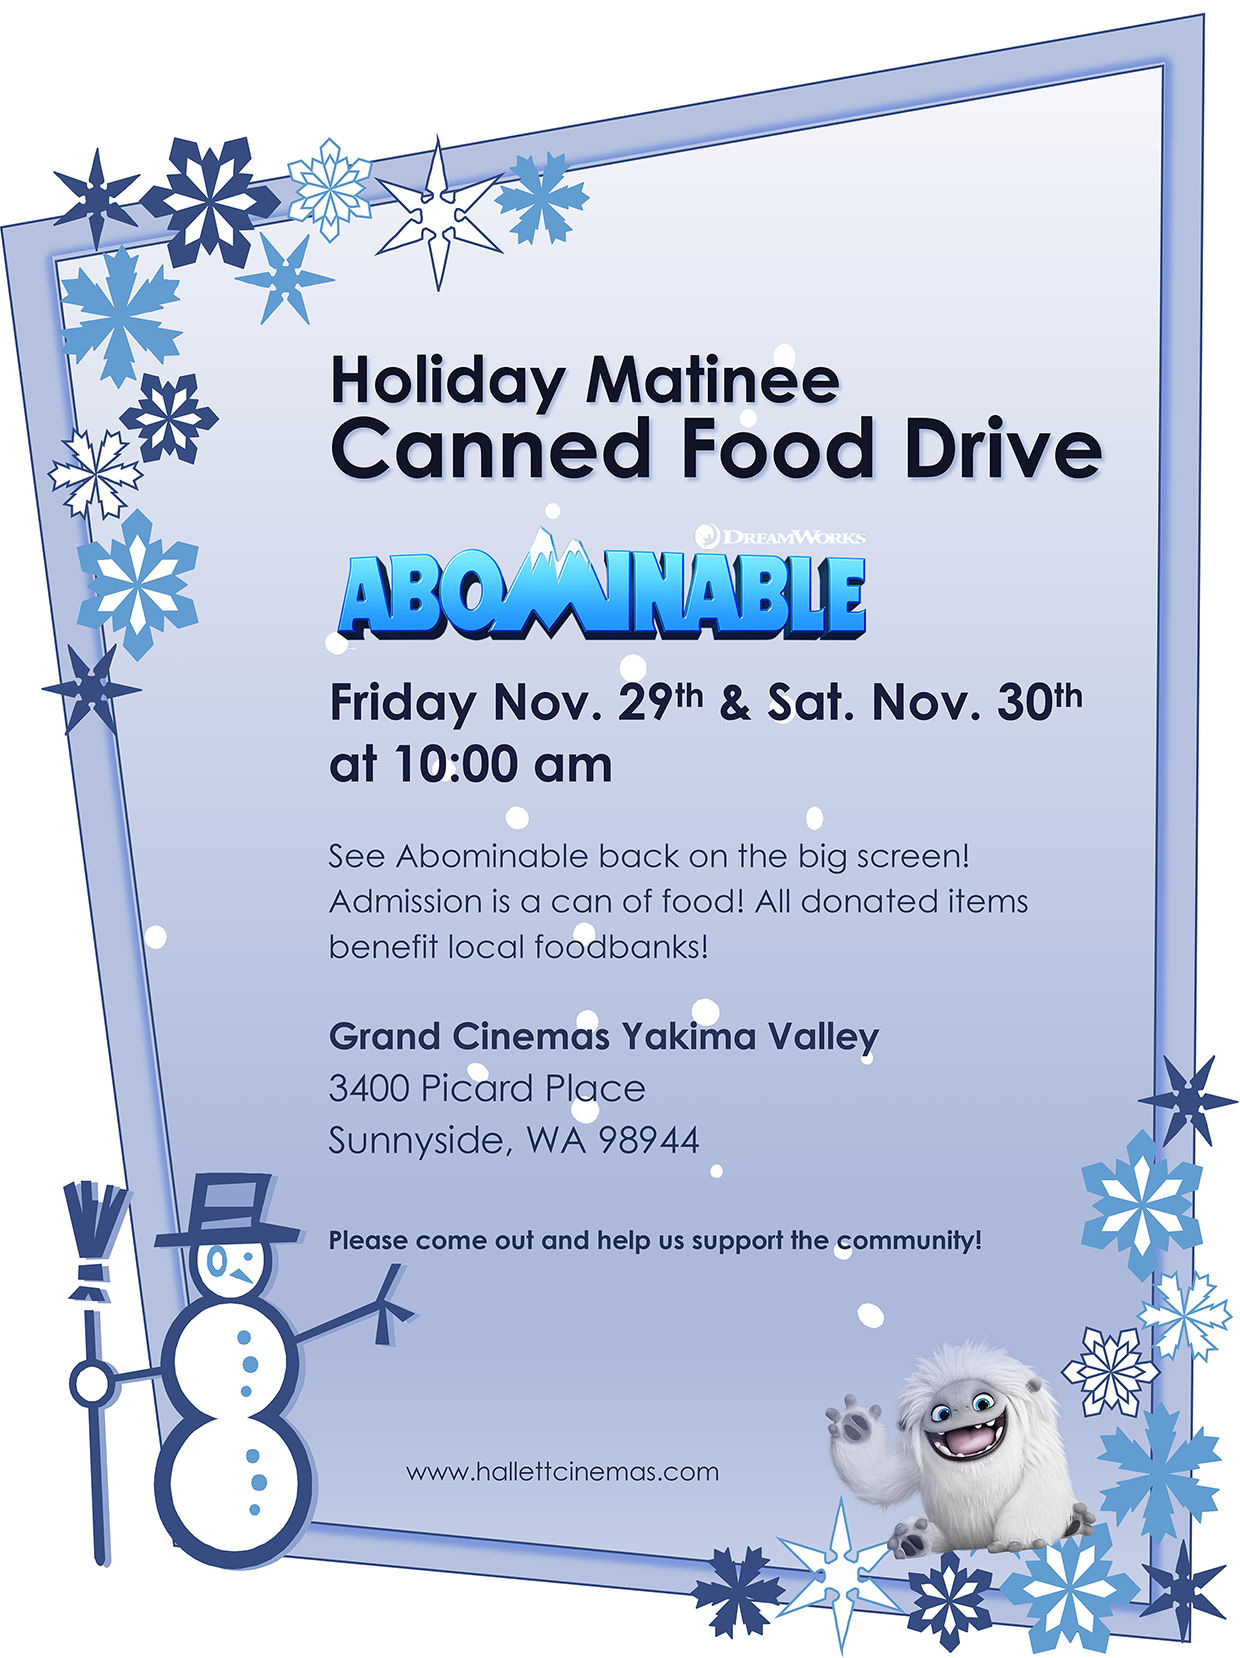 Join us Friday and Saturday November 29th and 30th at 10am for our Annual Holiday Matinee Canned Food drive. See Abominable back on the big screen! Admission is a can of food!